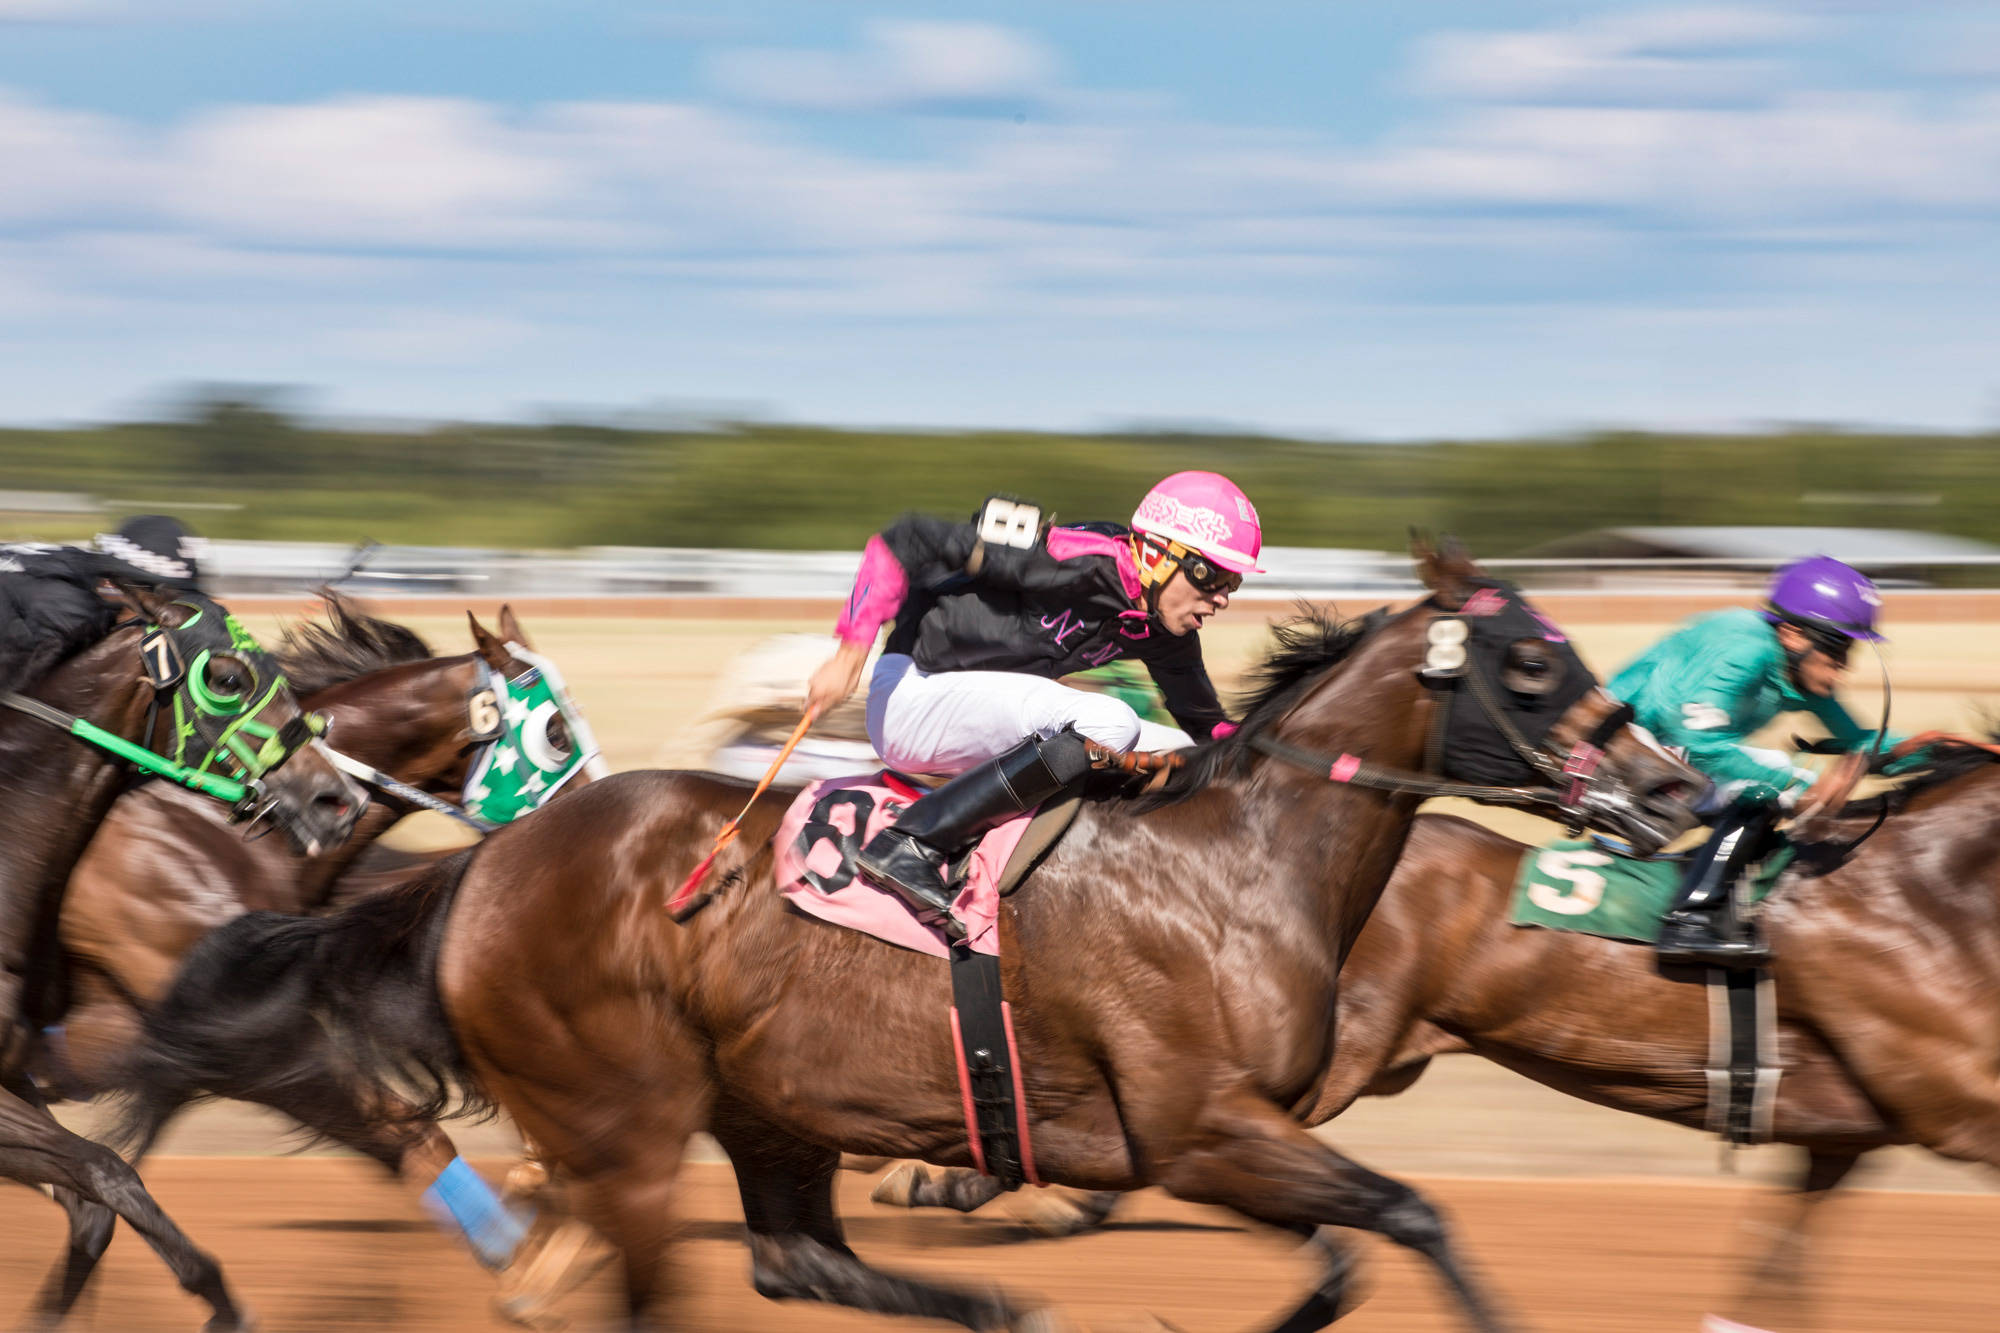 Gillespie County Horse Race